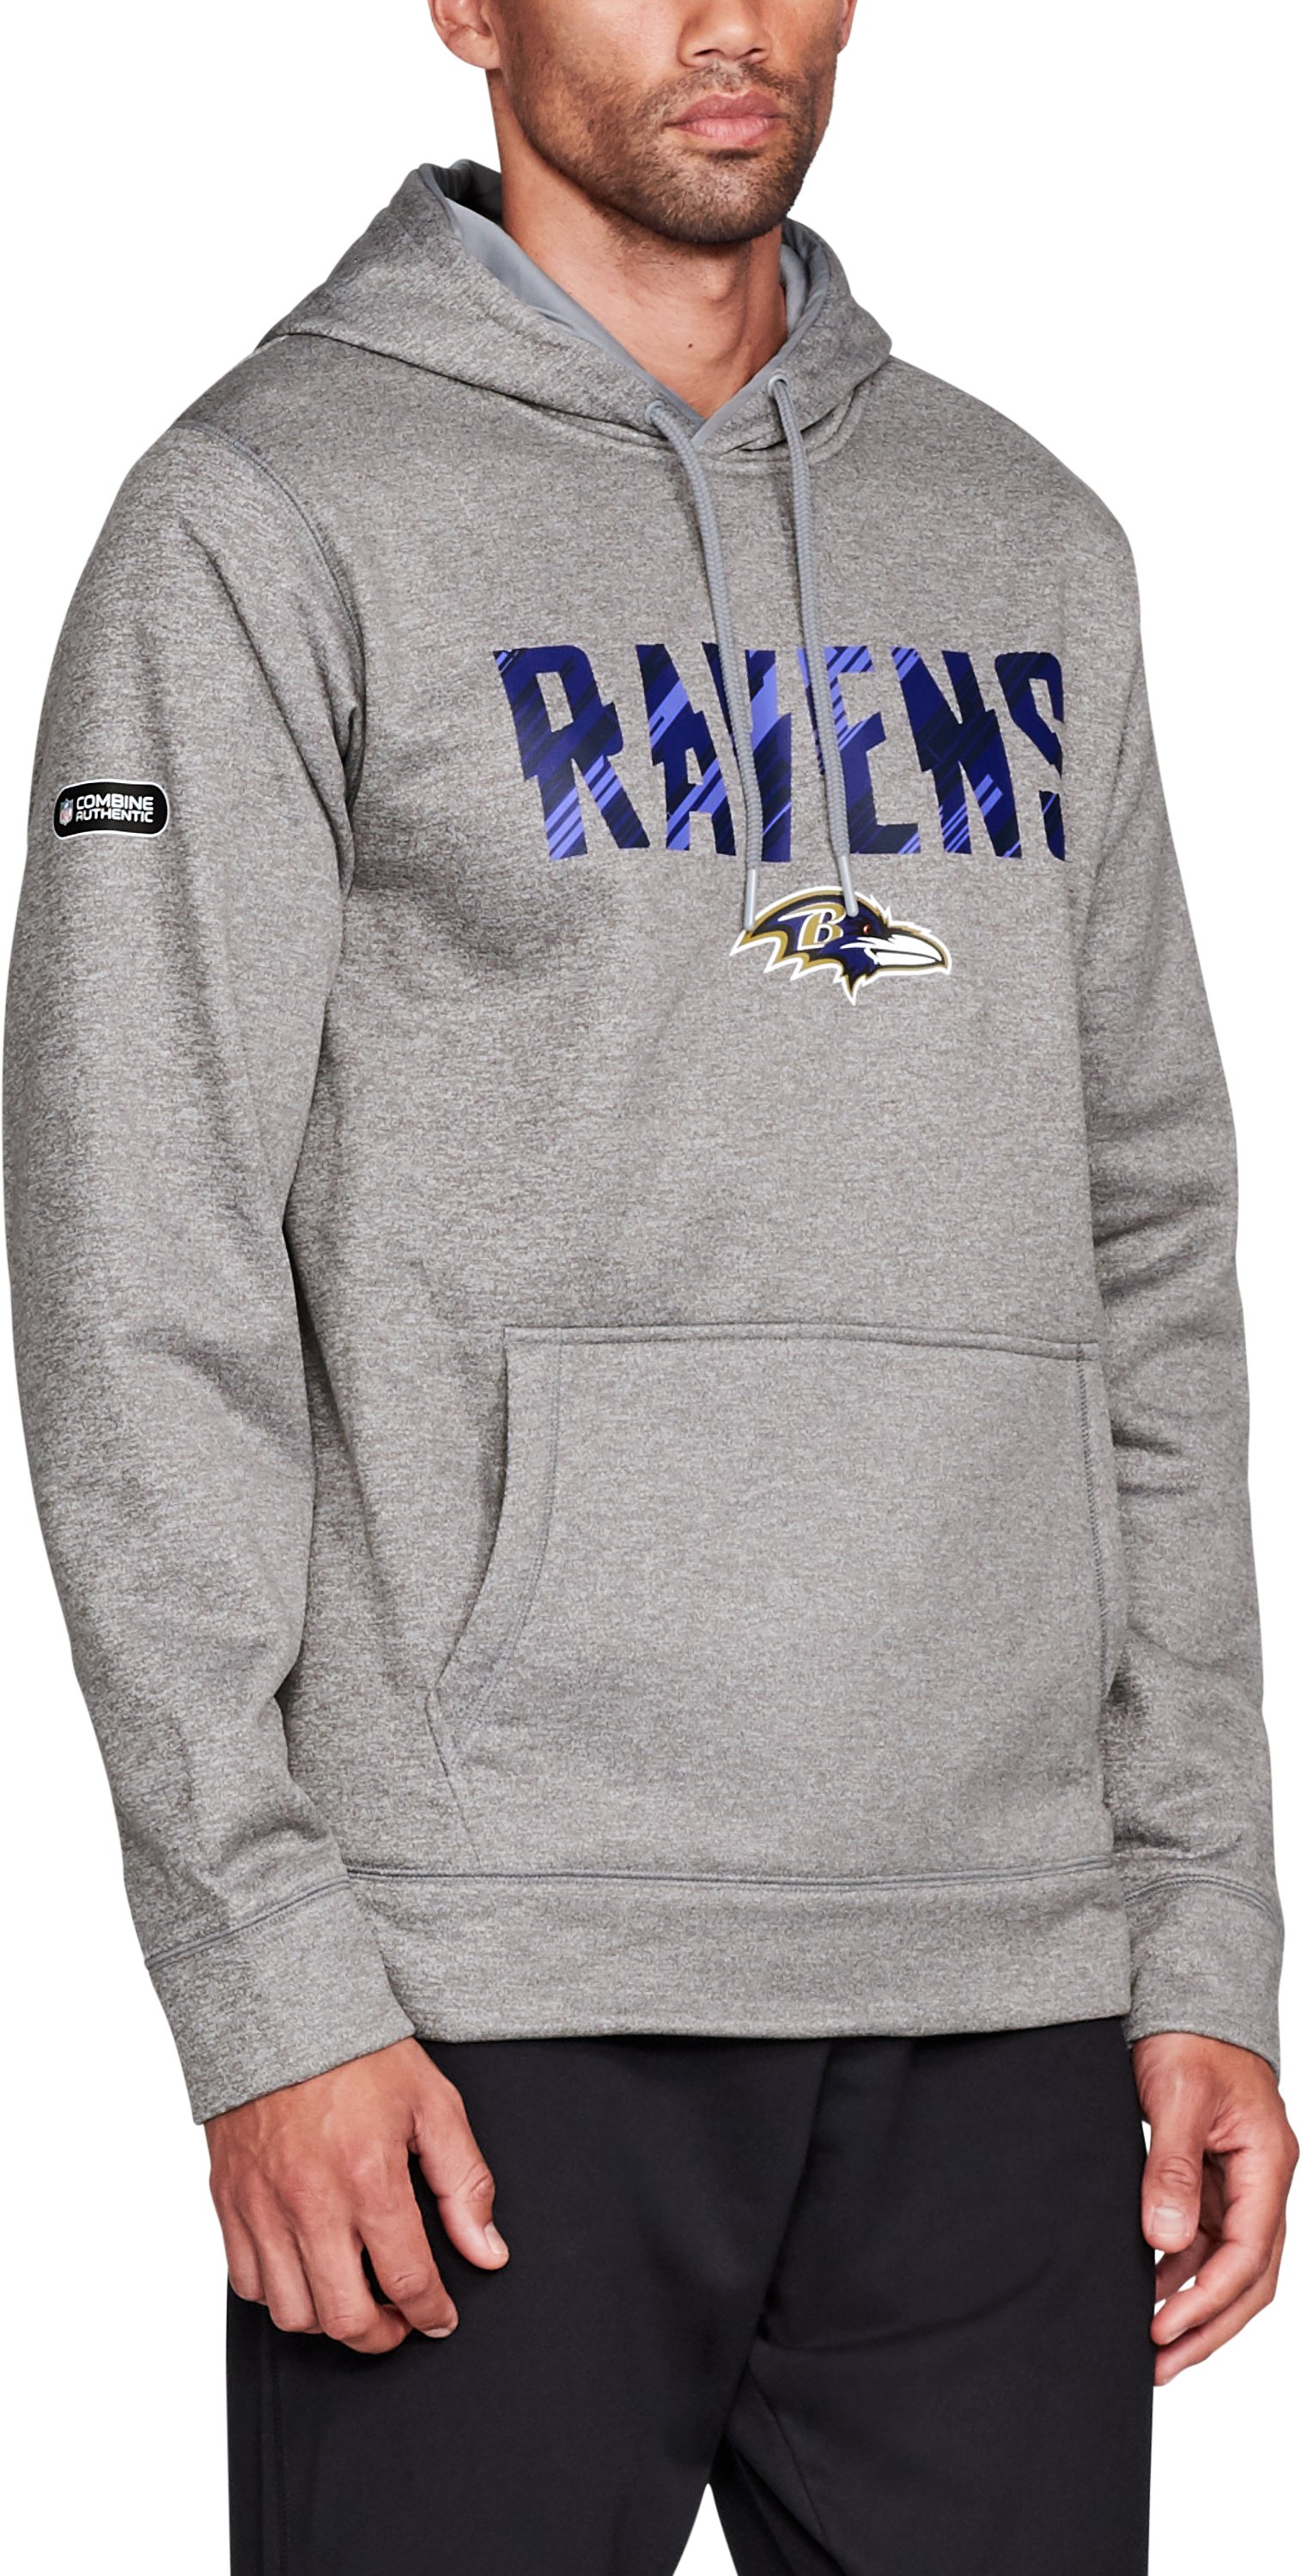 Men's NFL Combine Authentic Wordmark Hoodie, Baltimore Ravens